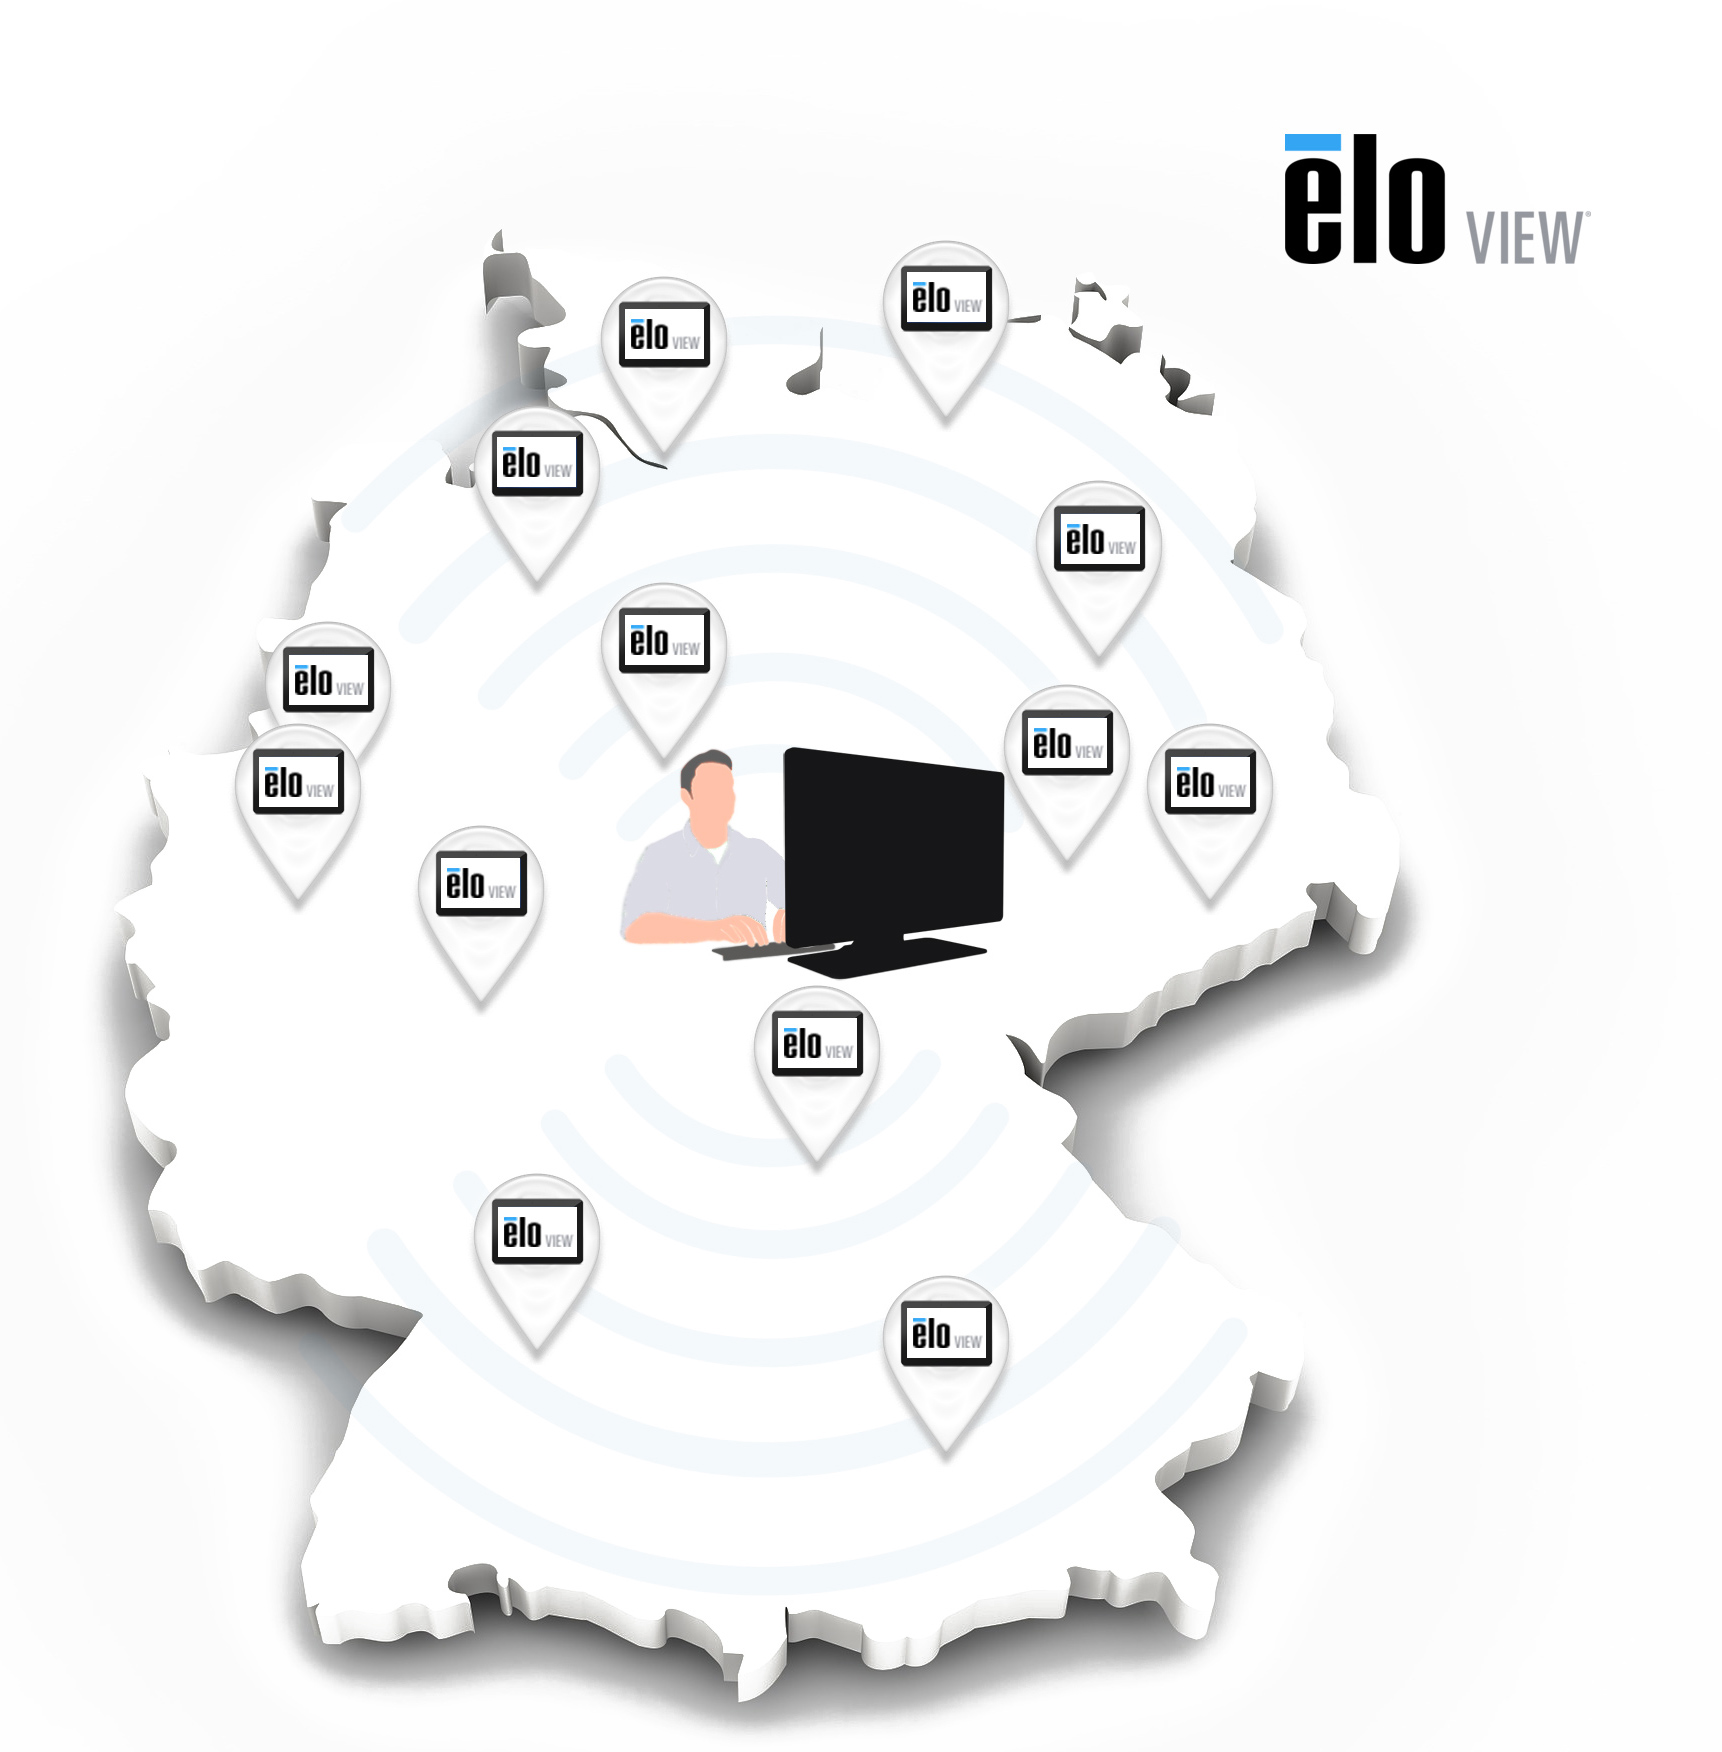 EloView Kiosk & Remote - Apps auf All-in-One Touch PC zeigen